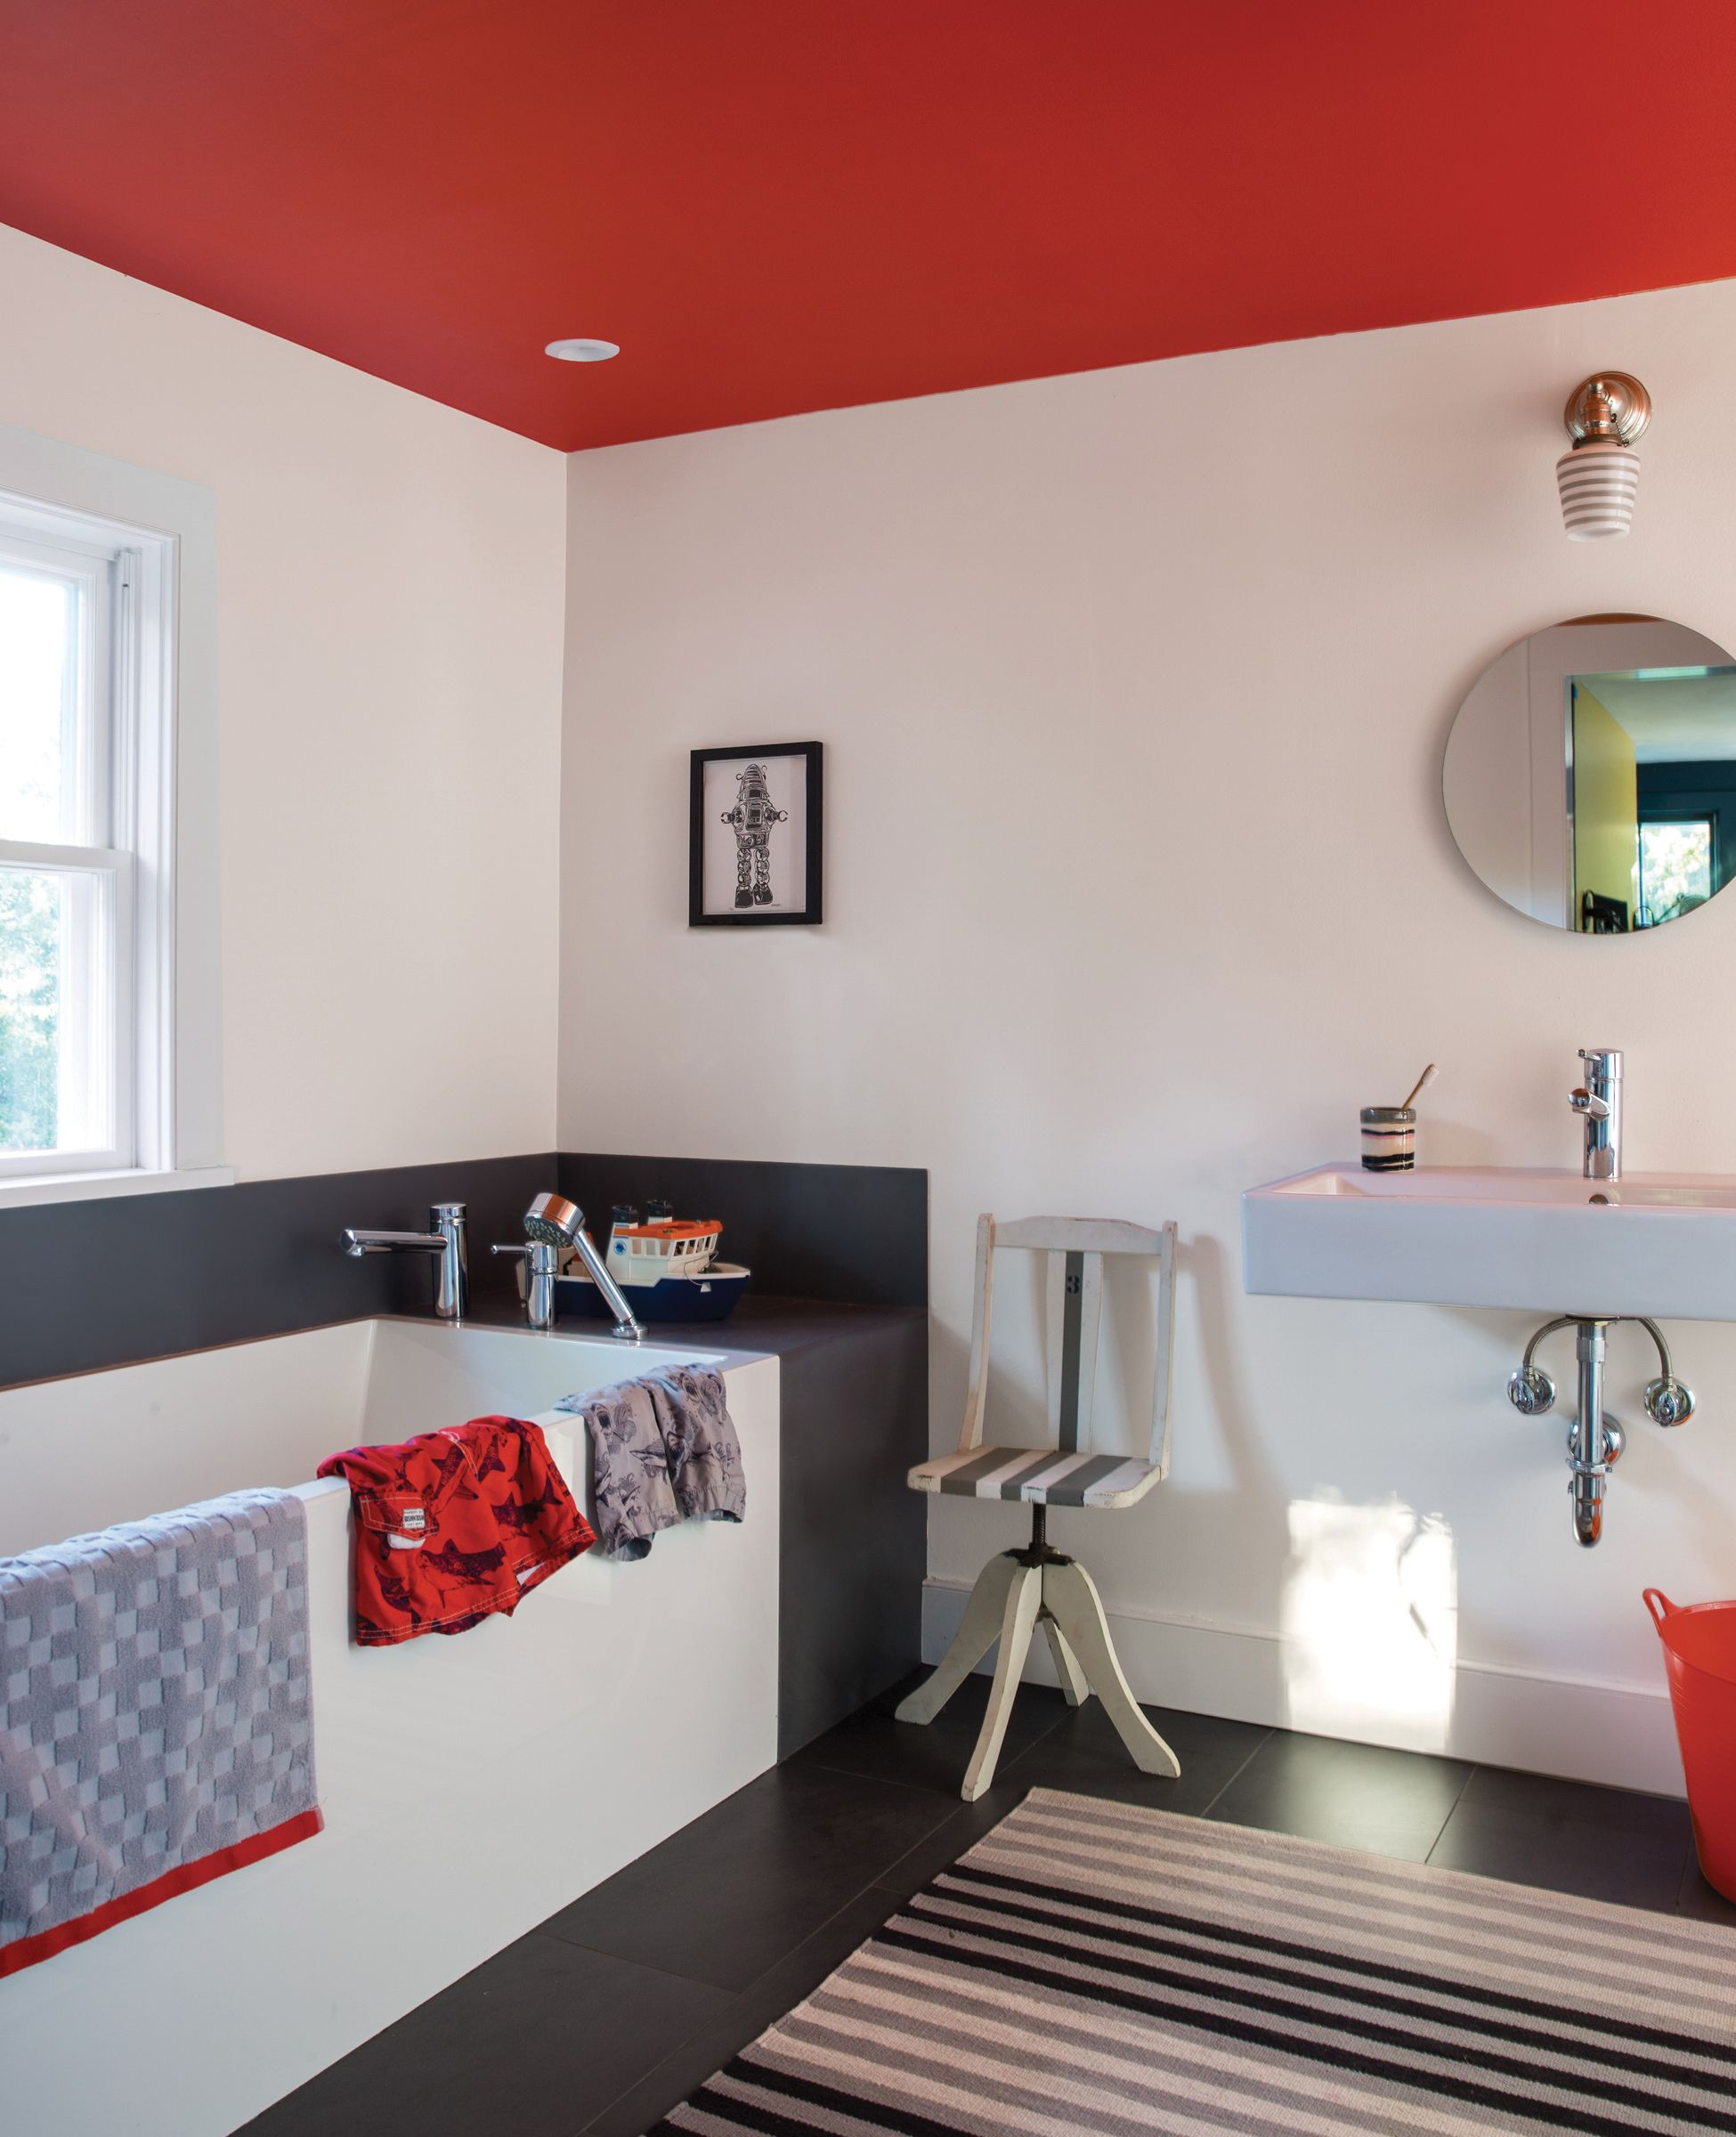 Bathroom Paint Color Ideas Inspiration Benjamin Moore Red Decor Colors